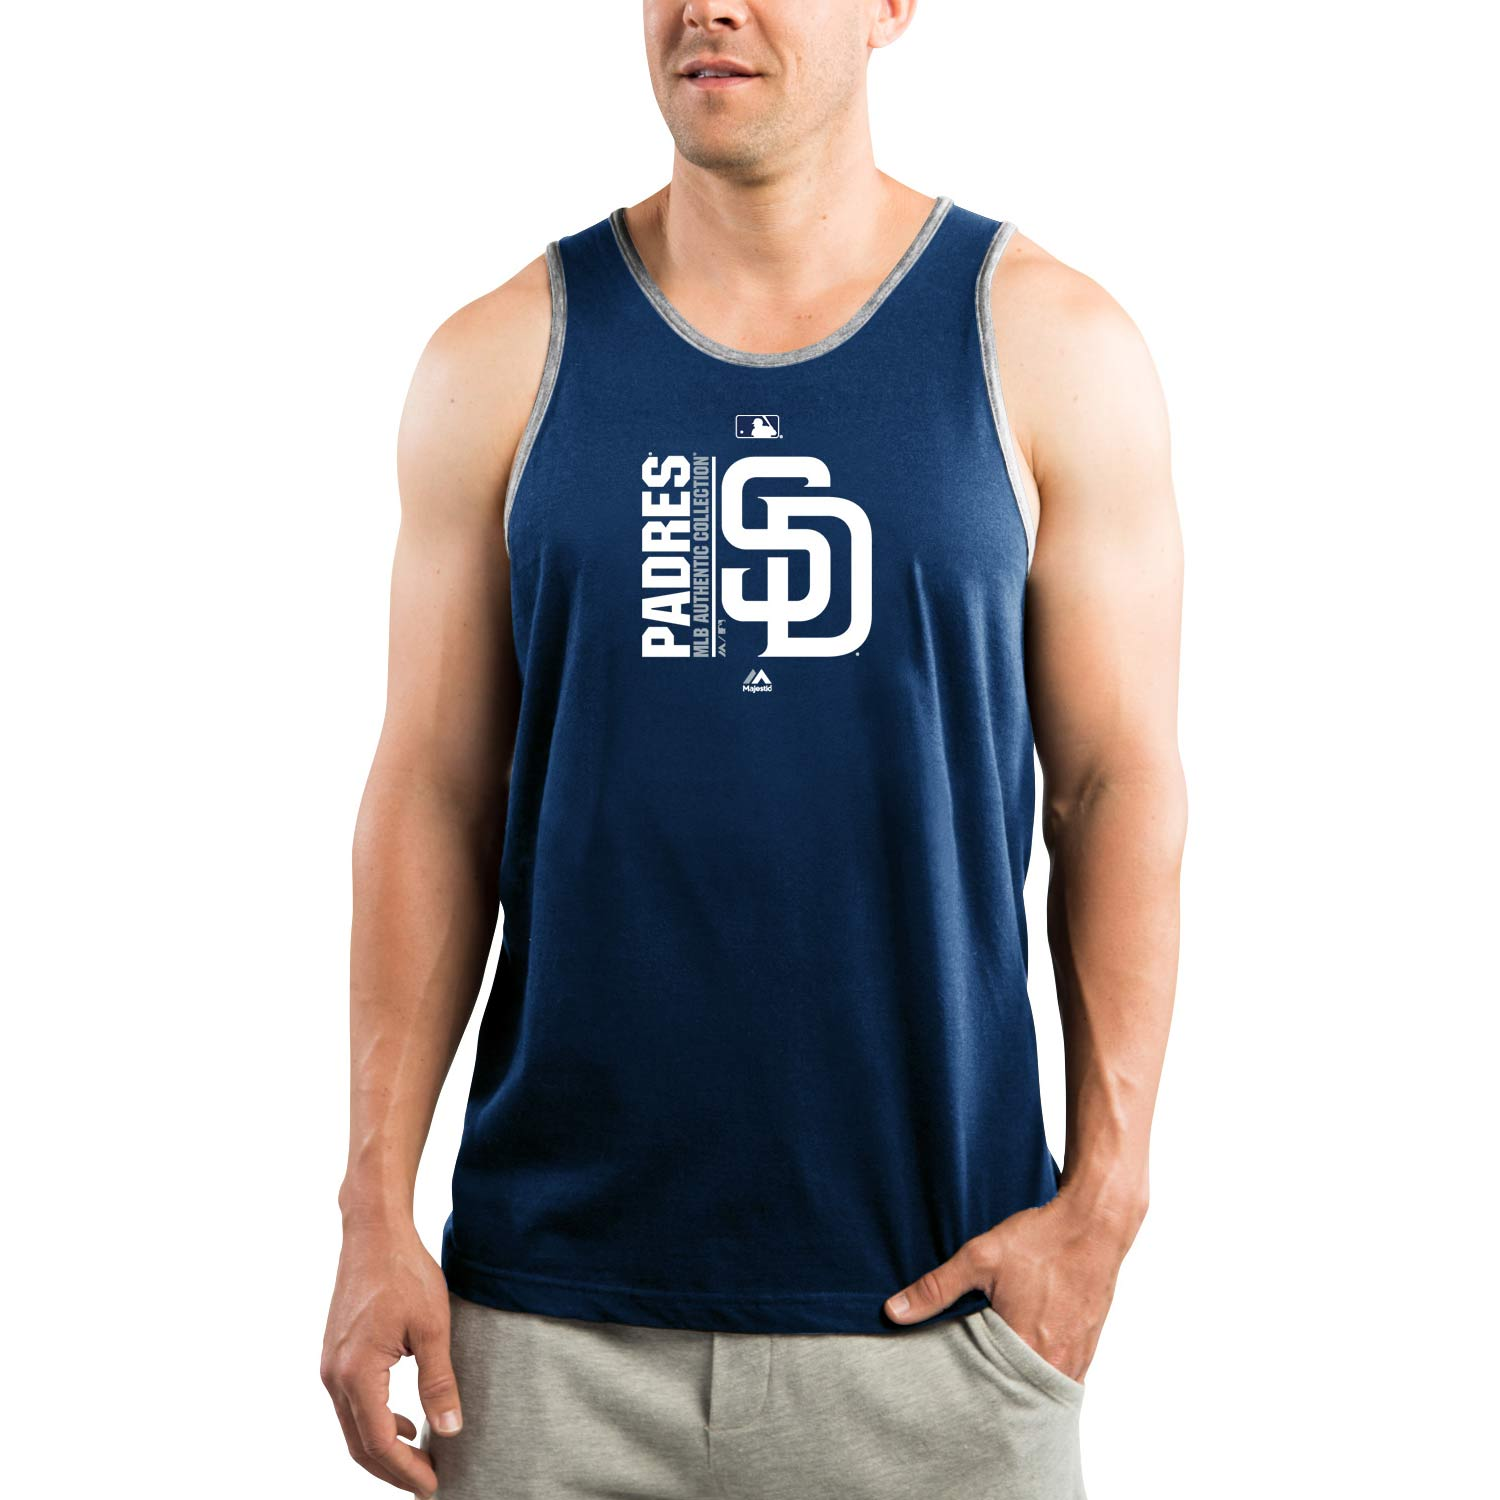 San Diego Padres Majestic Authentic Collection Team Icon Tank Top - Navy/Gray